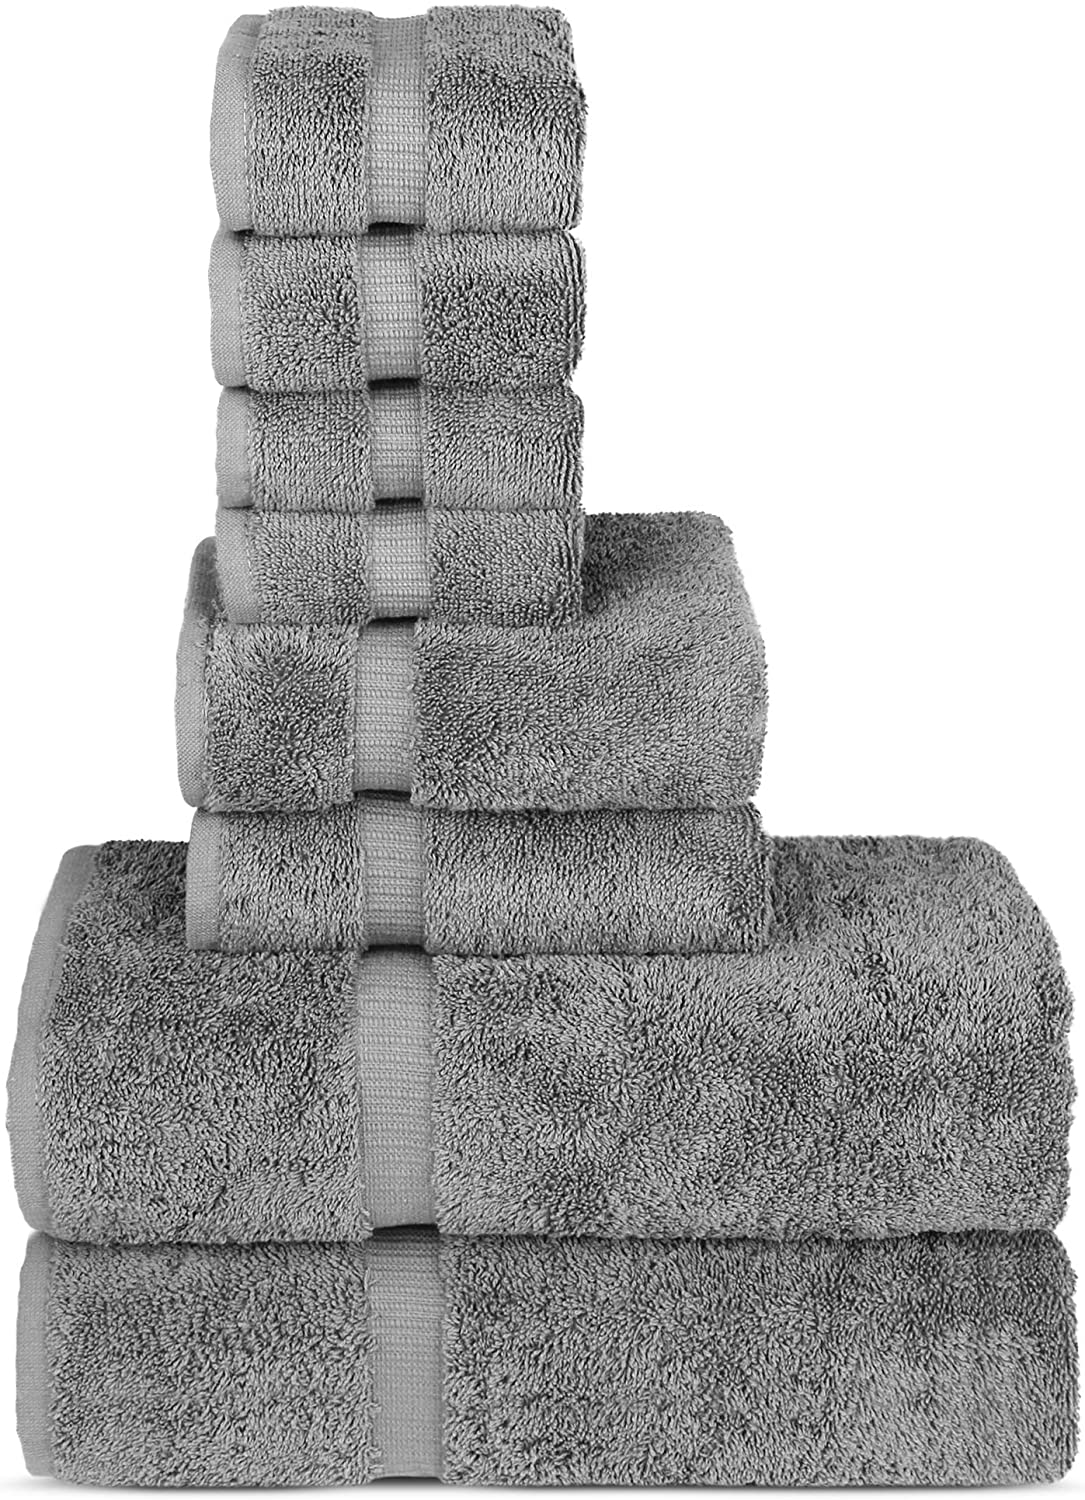 Chakir Turkish Linens Hotel & Spa Quality, Highly Absorbent Towel Set (Set of 8, Gray)